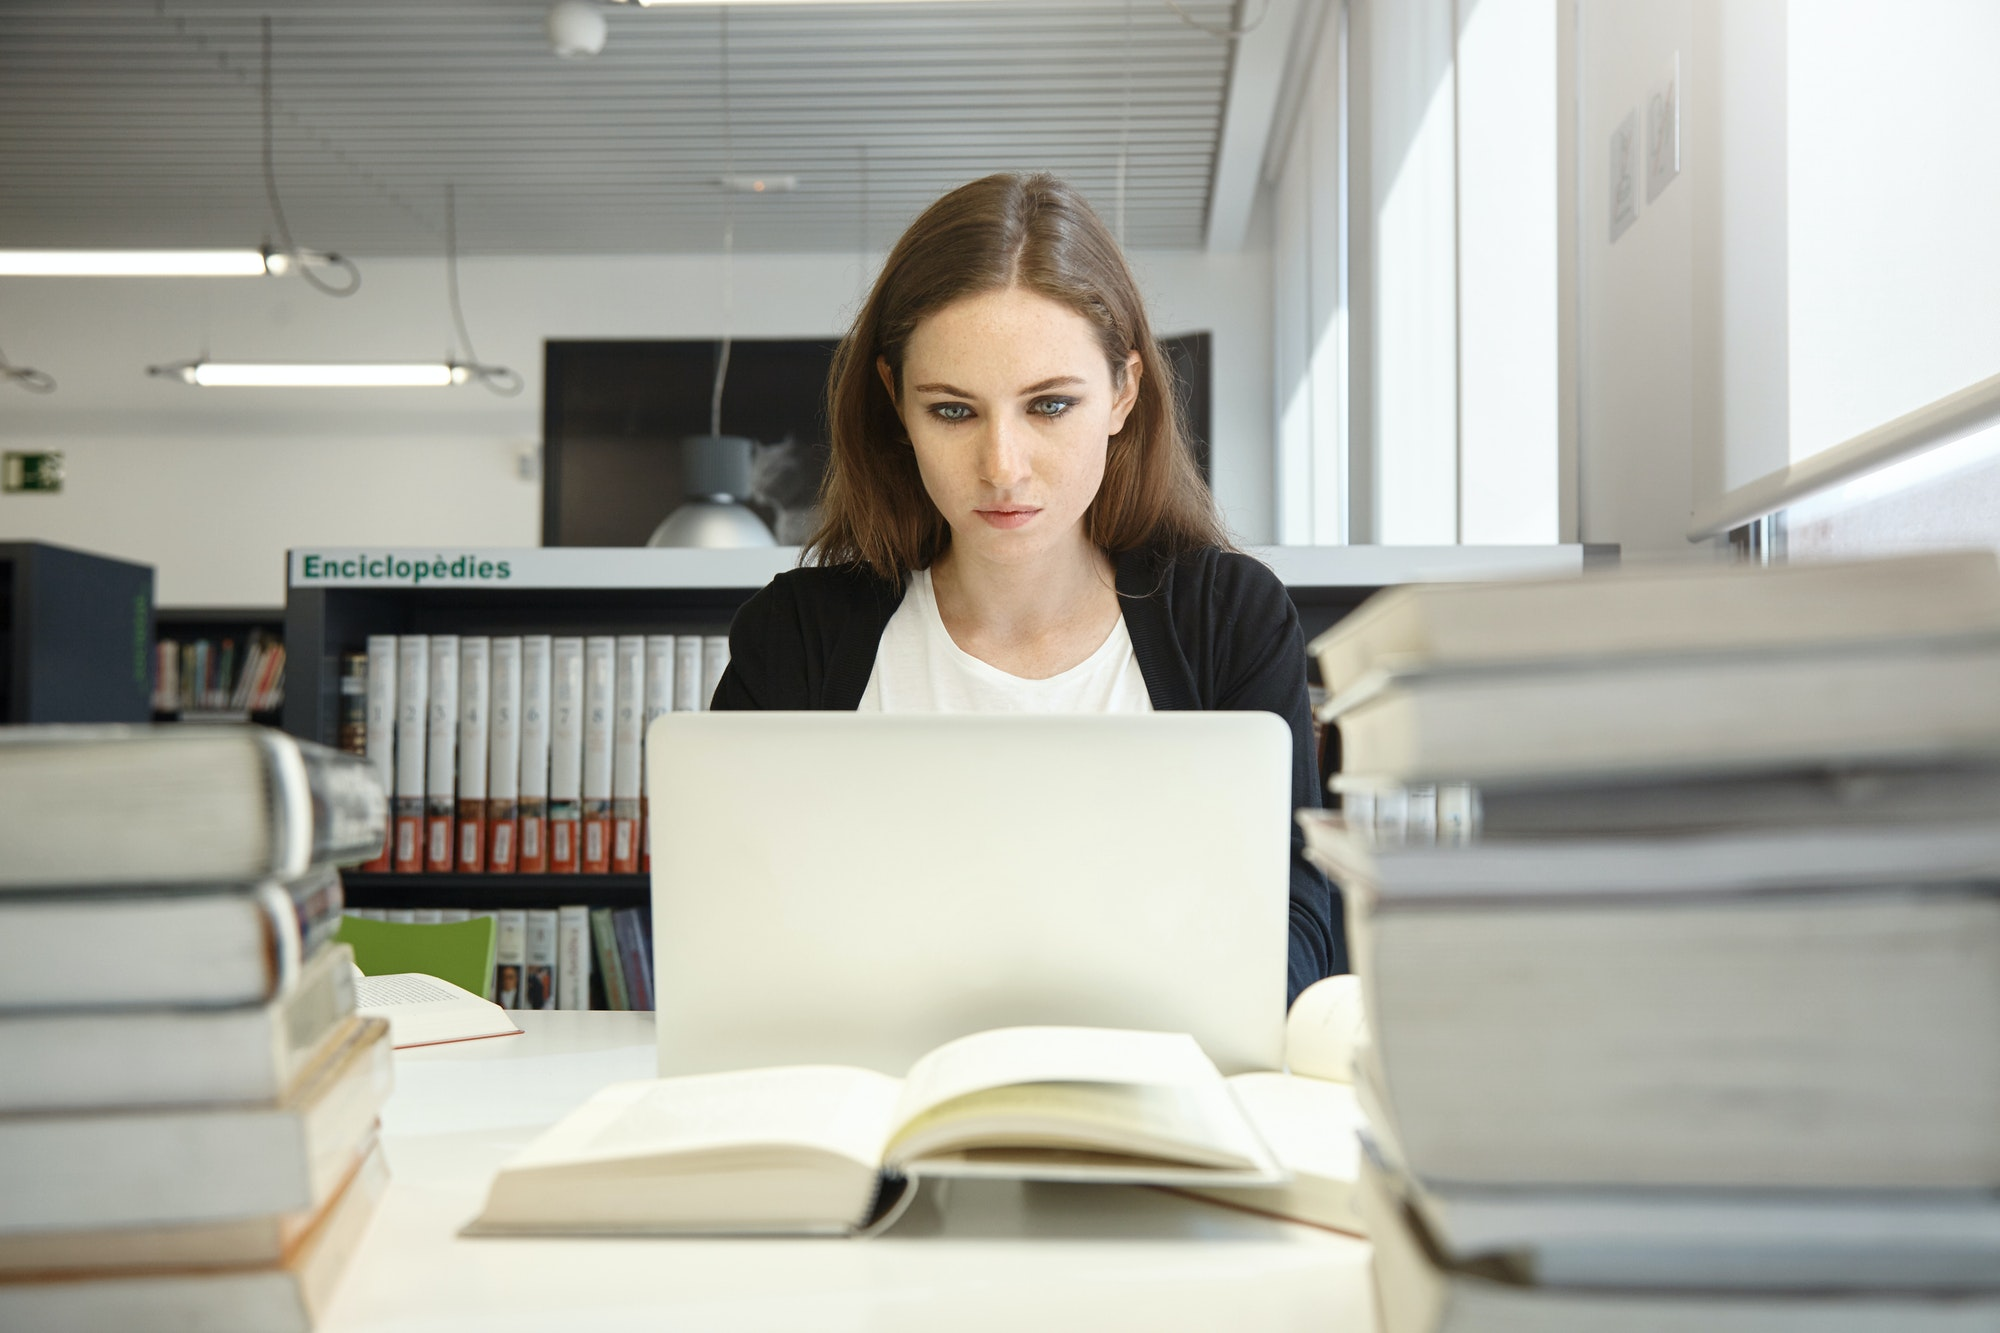 Female college student with long hair studying at university library or study room, typing on generi